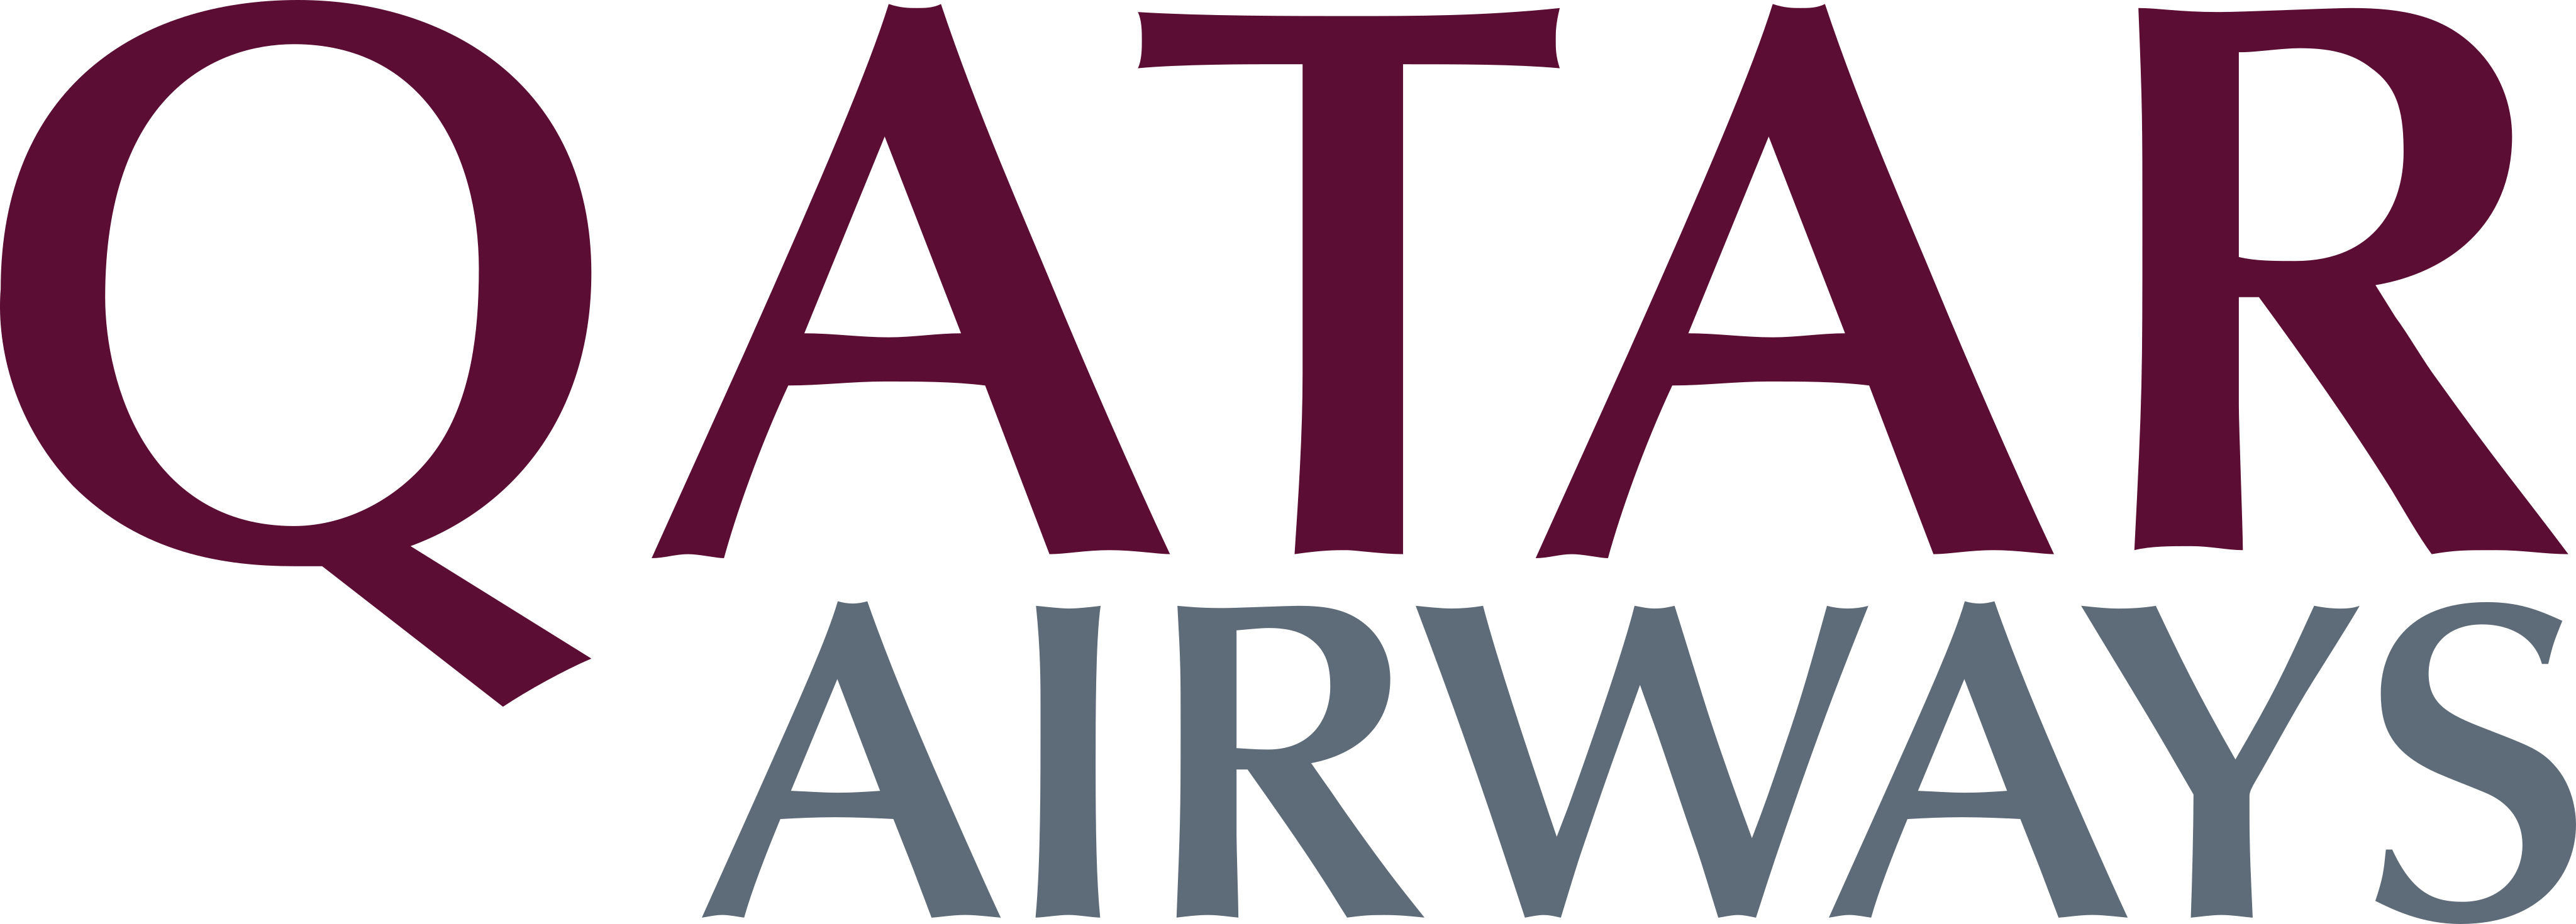 Qantas Airways Logo.